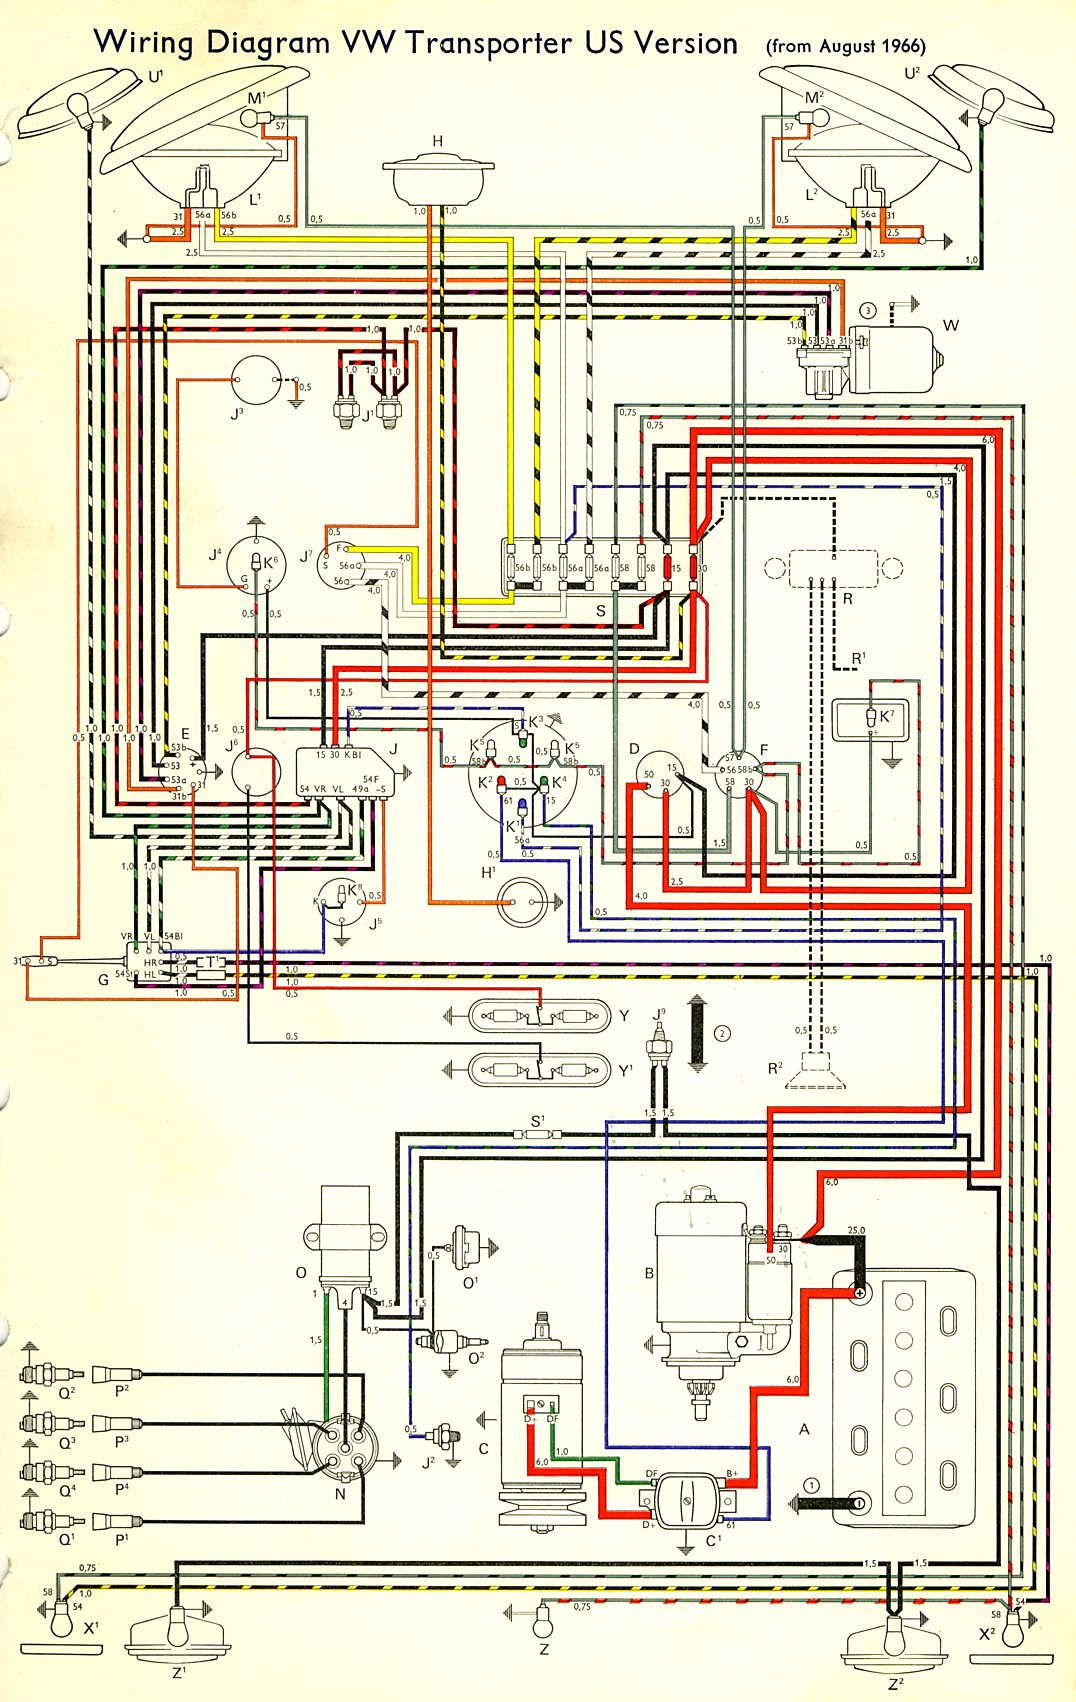 bus_67_USA 67 vw bus wiring harness 71 vw wiring harness \u2022 wiring diagrams Wiring Harness Diagram at crackthecode.co